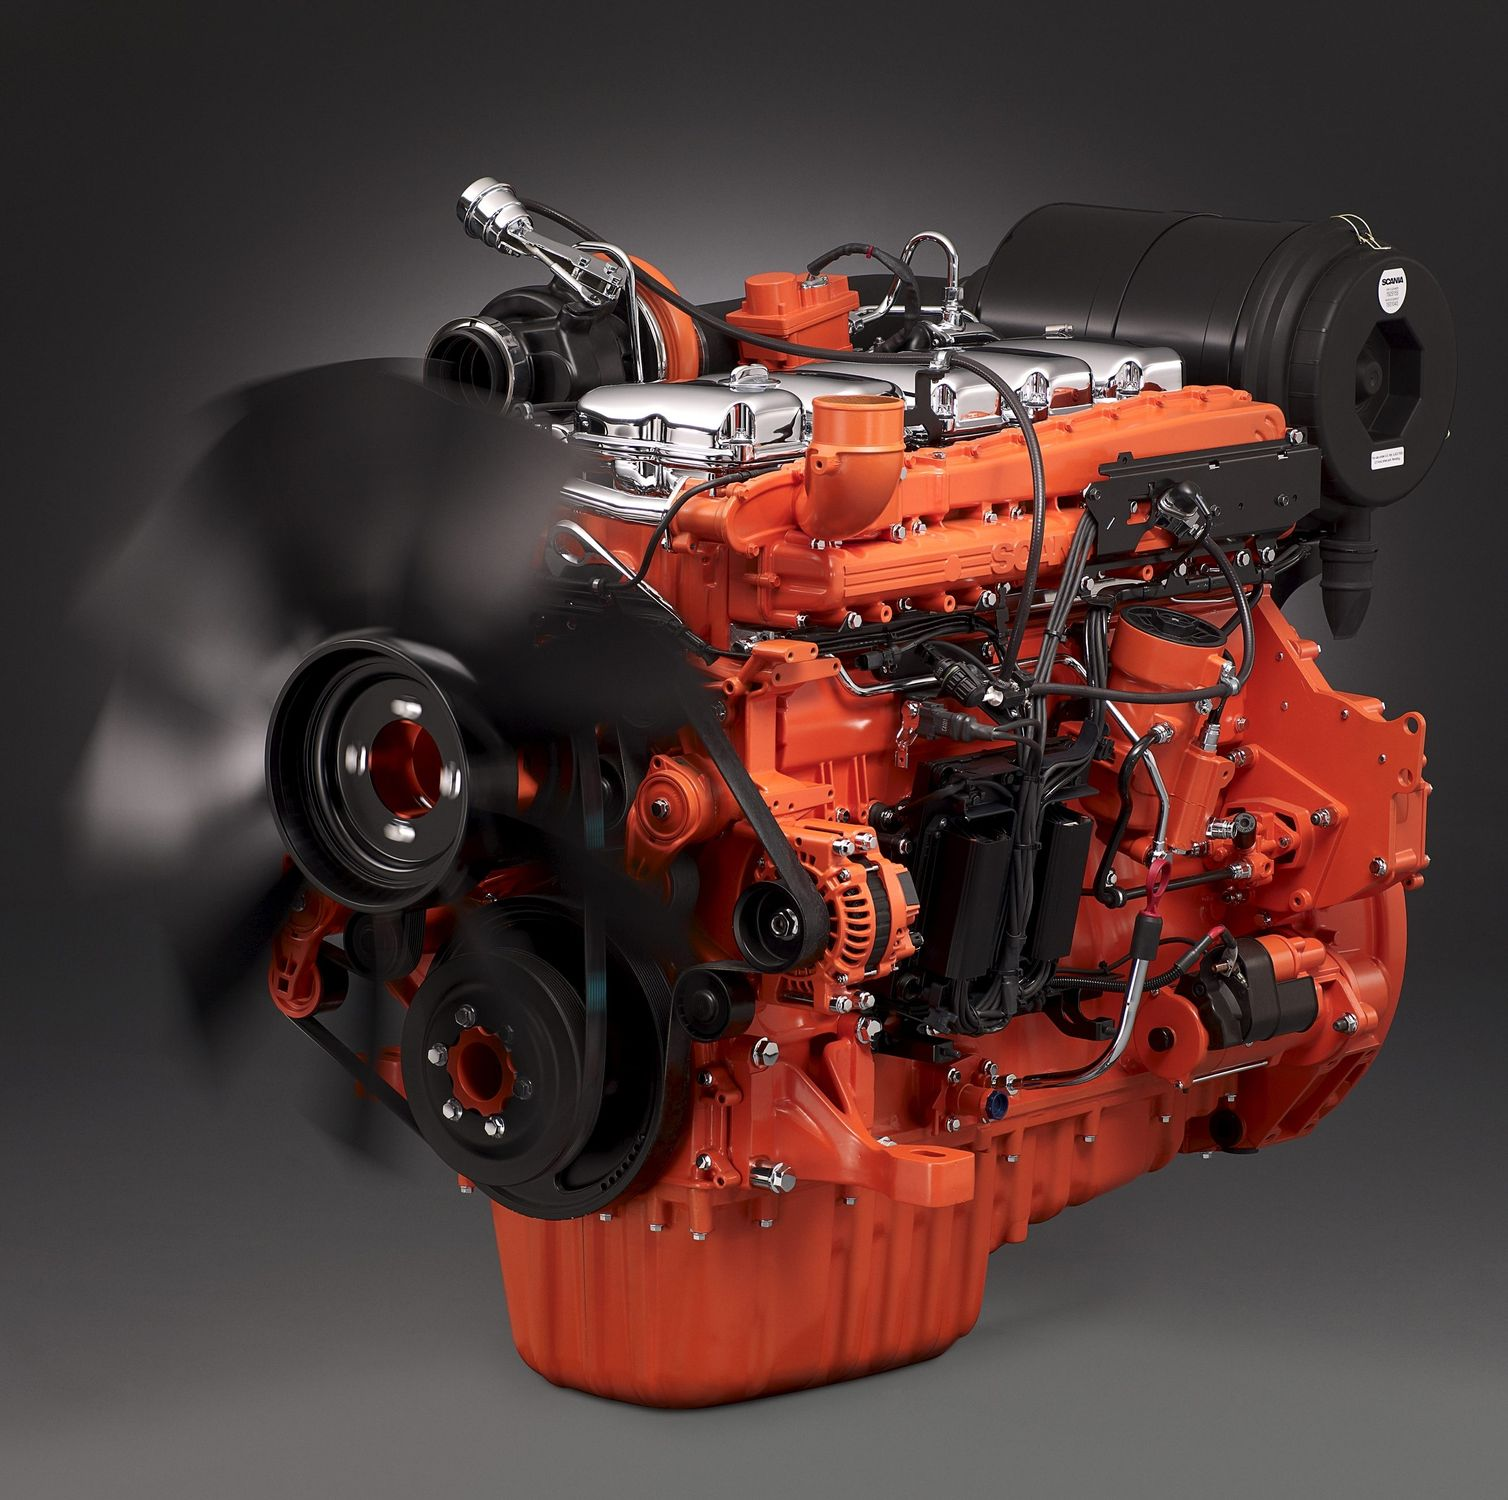 New engines for latest generation Scanias - SMMT